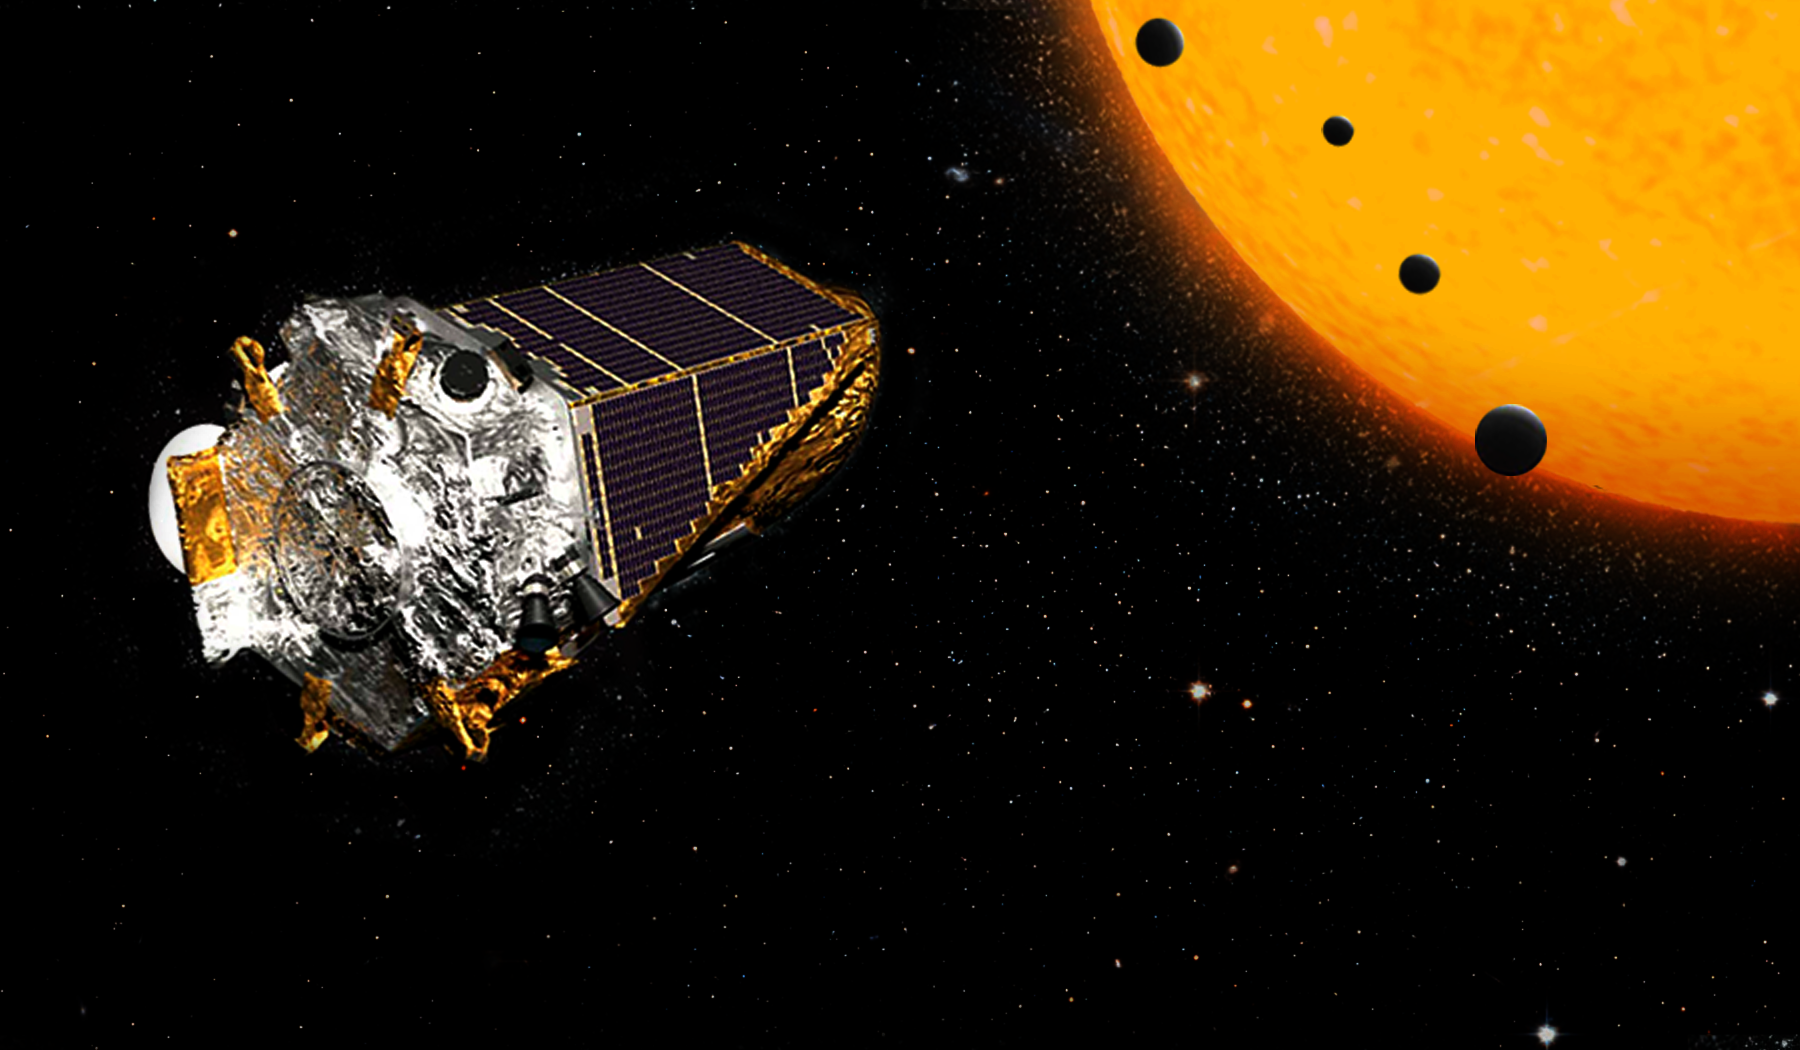 A rendering of the Kepler telescope